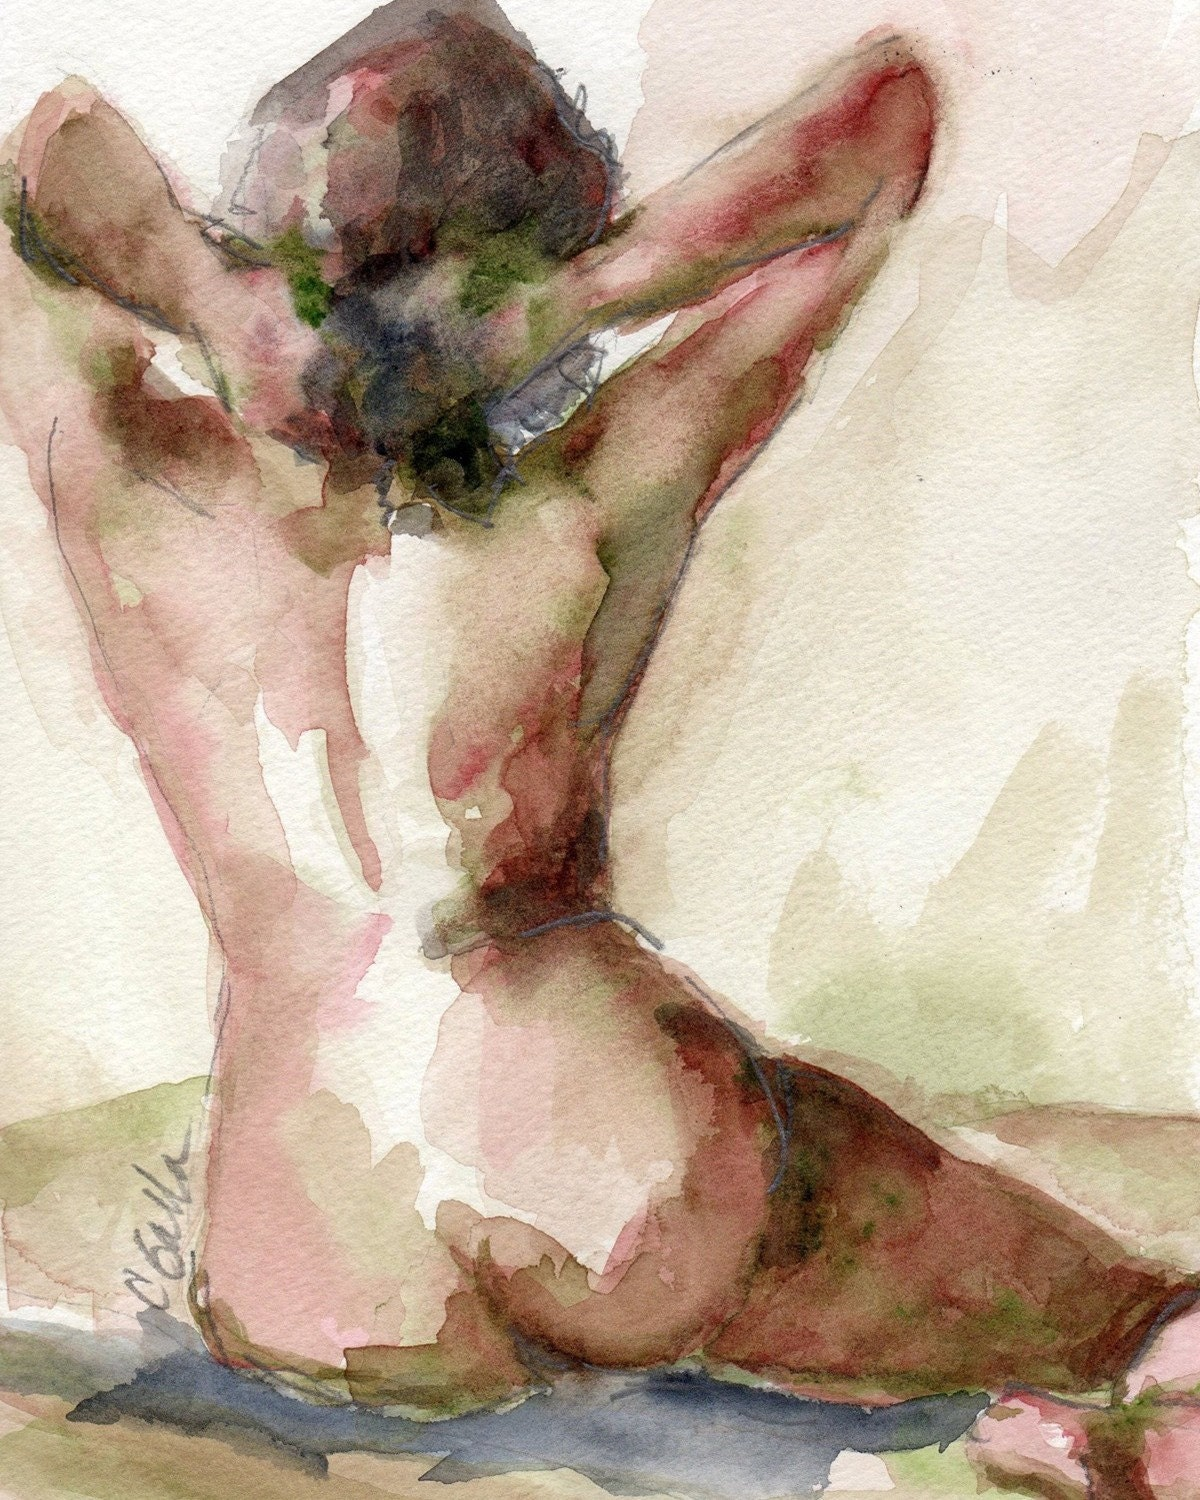 Nude Female Figure Watercolor Painting Giclee Print  8 x 10 - CGallaFineArt